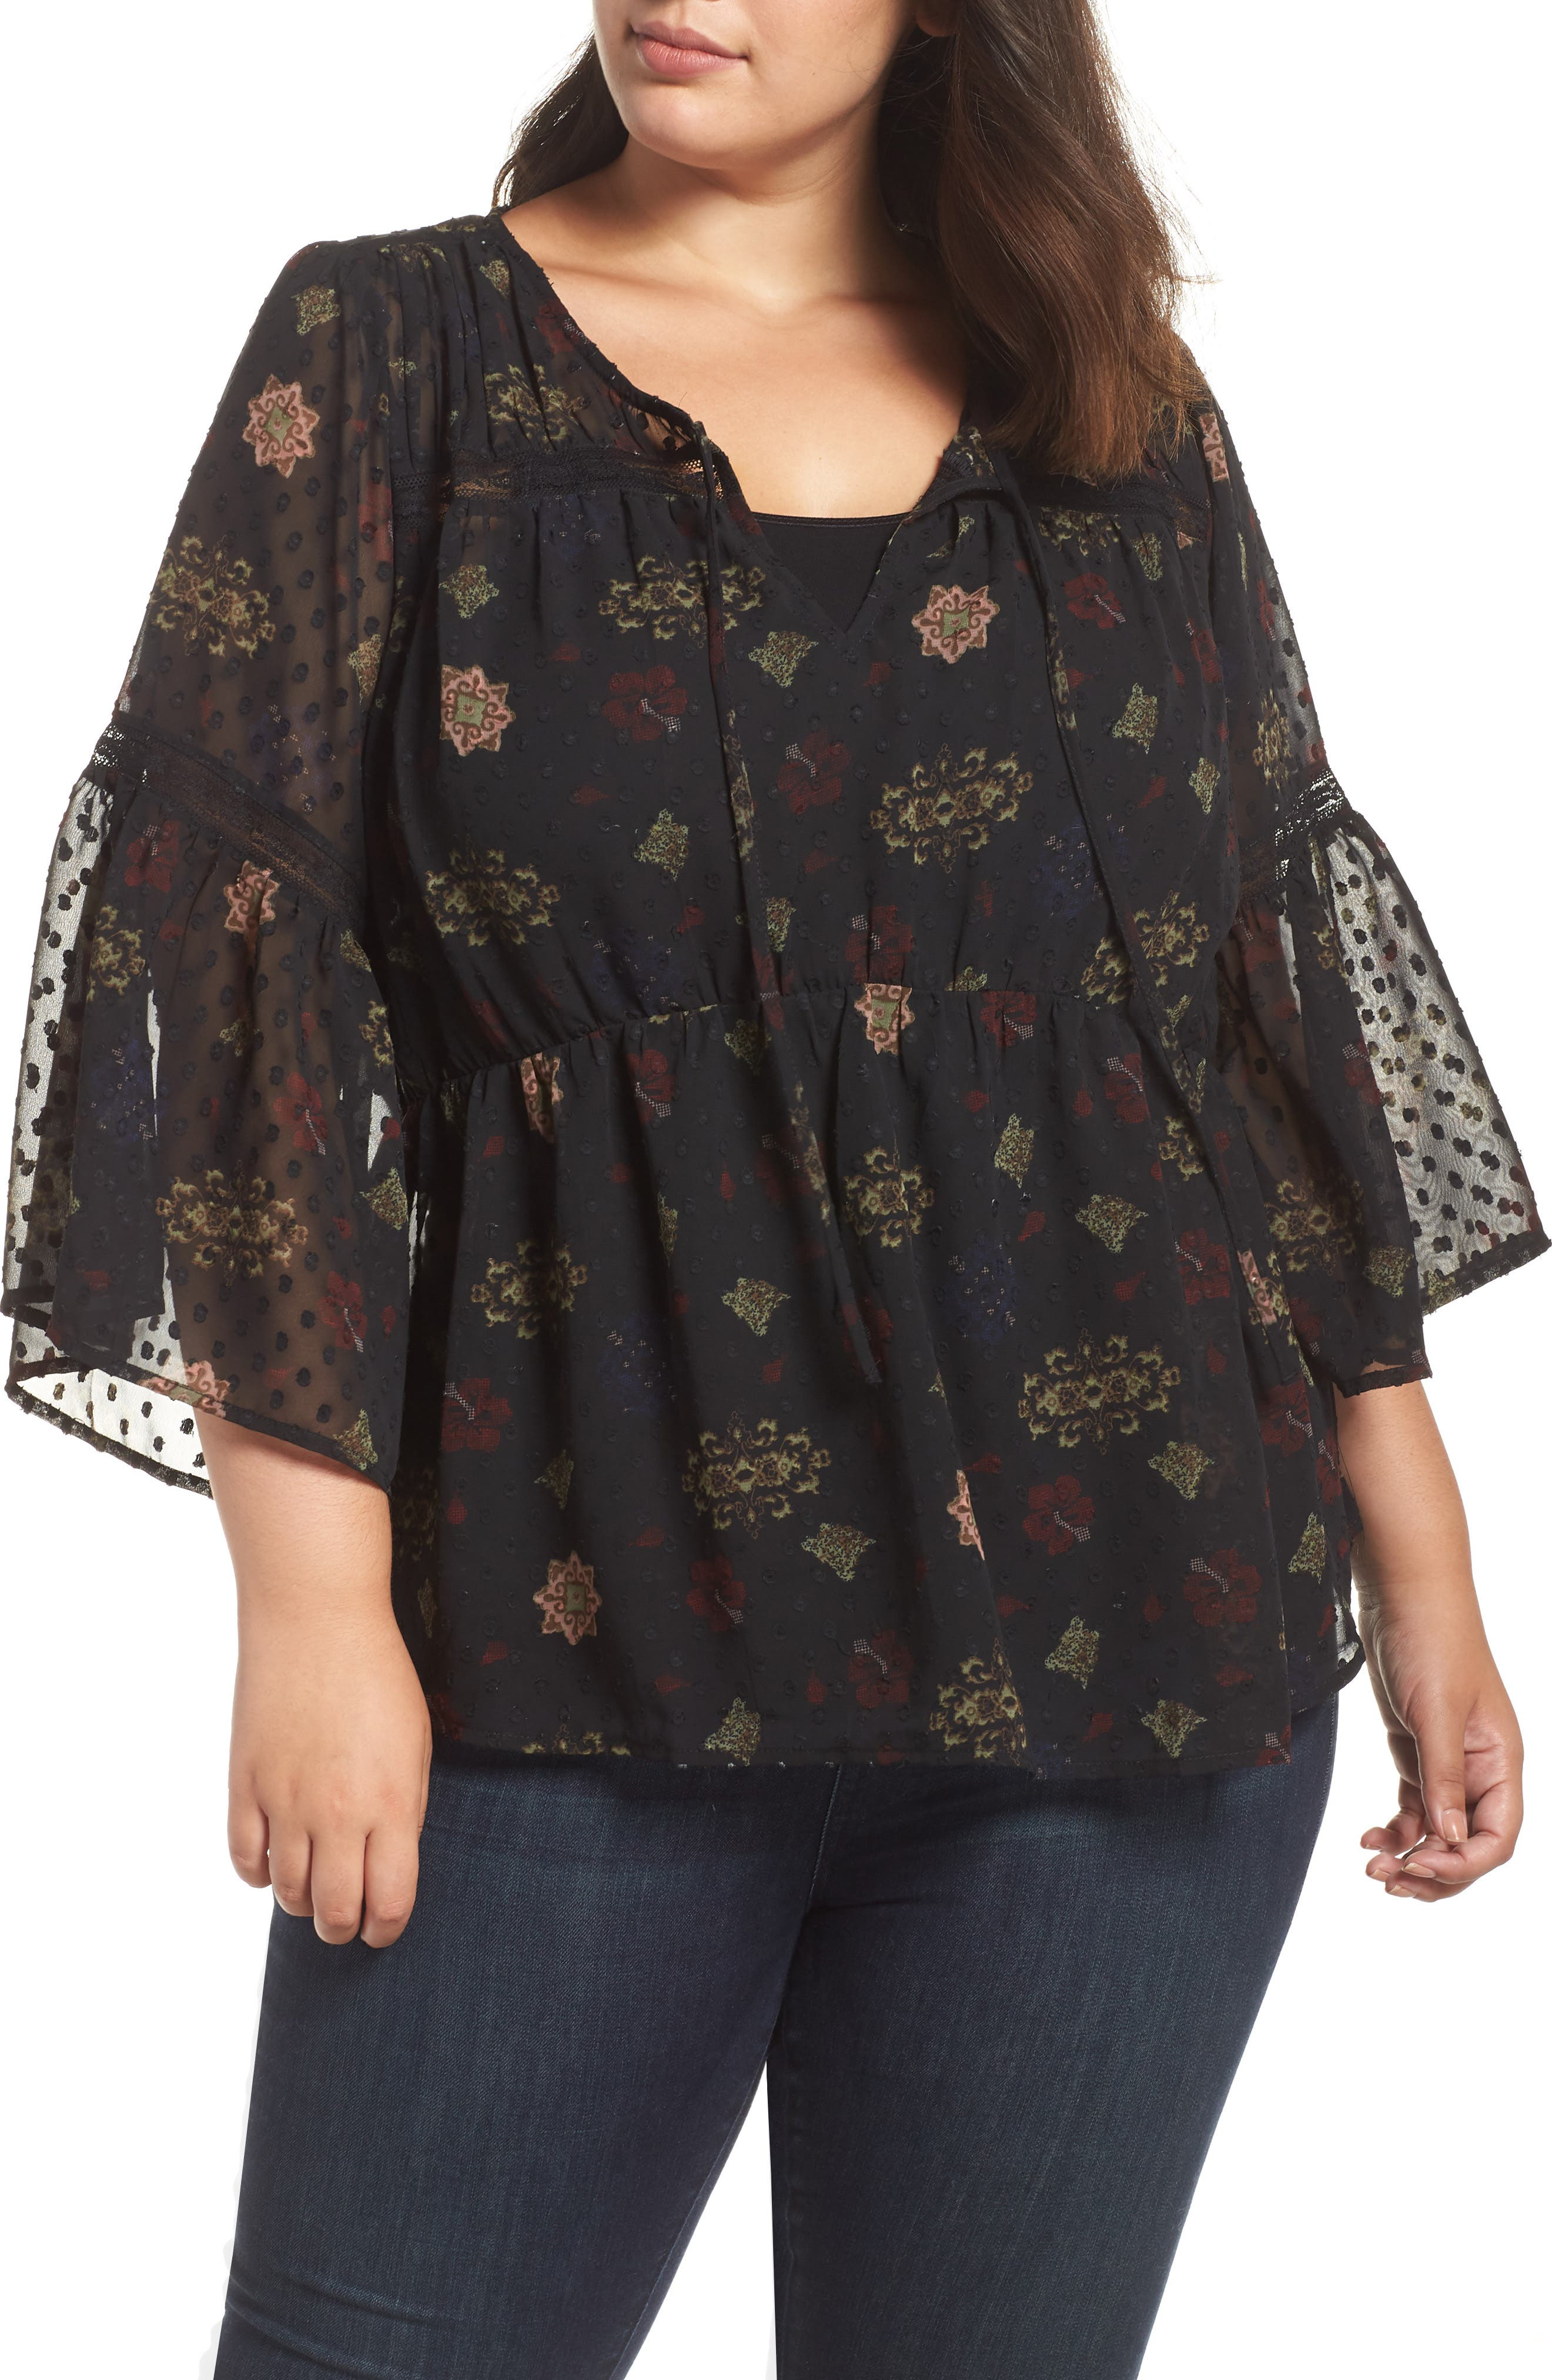 Swiss Dot Floral Top,                             Main thumbnail 1, color,                             BLACK MULTI